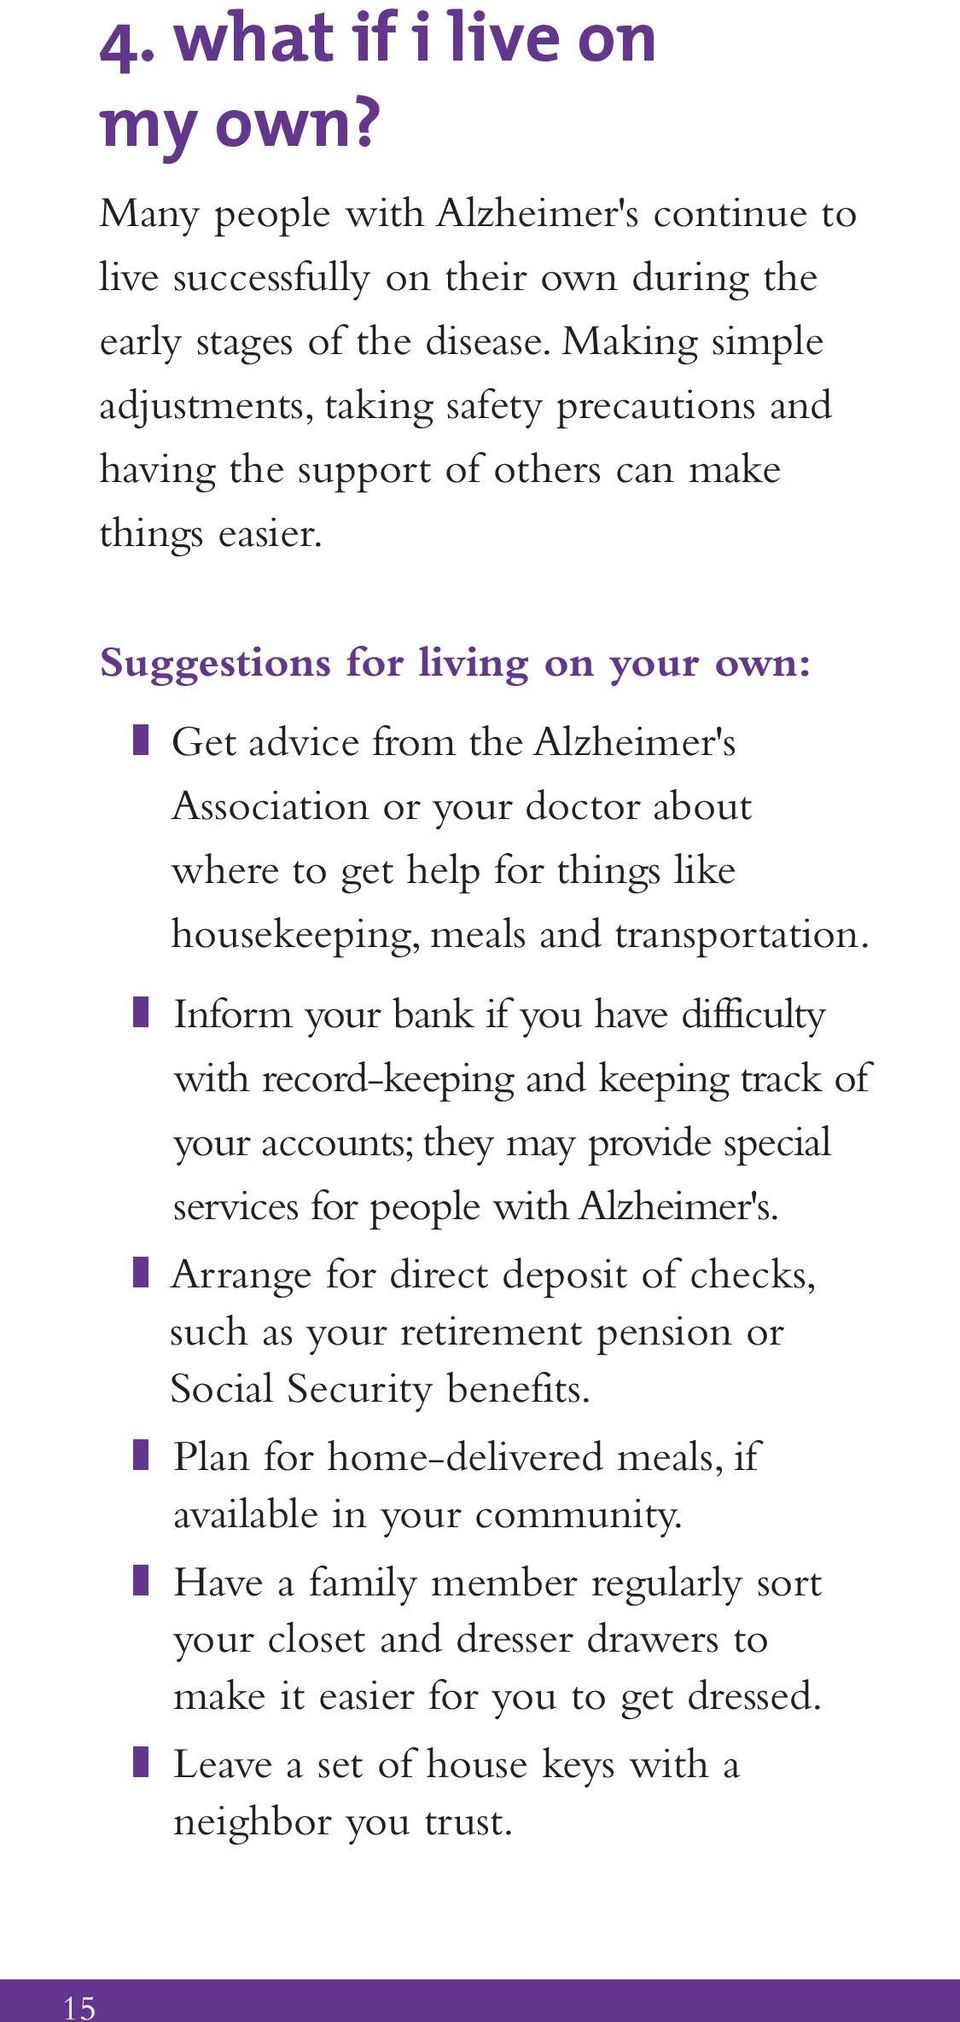 Suggestions for living on your own: z Get advice from the Alzheimer's Association or your doctor about where to get help for things like housekeeping, meals and transportation.